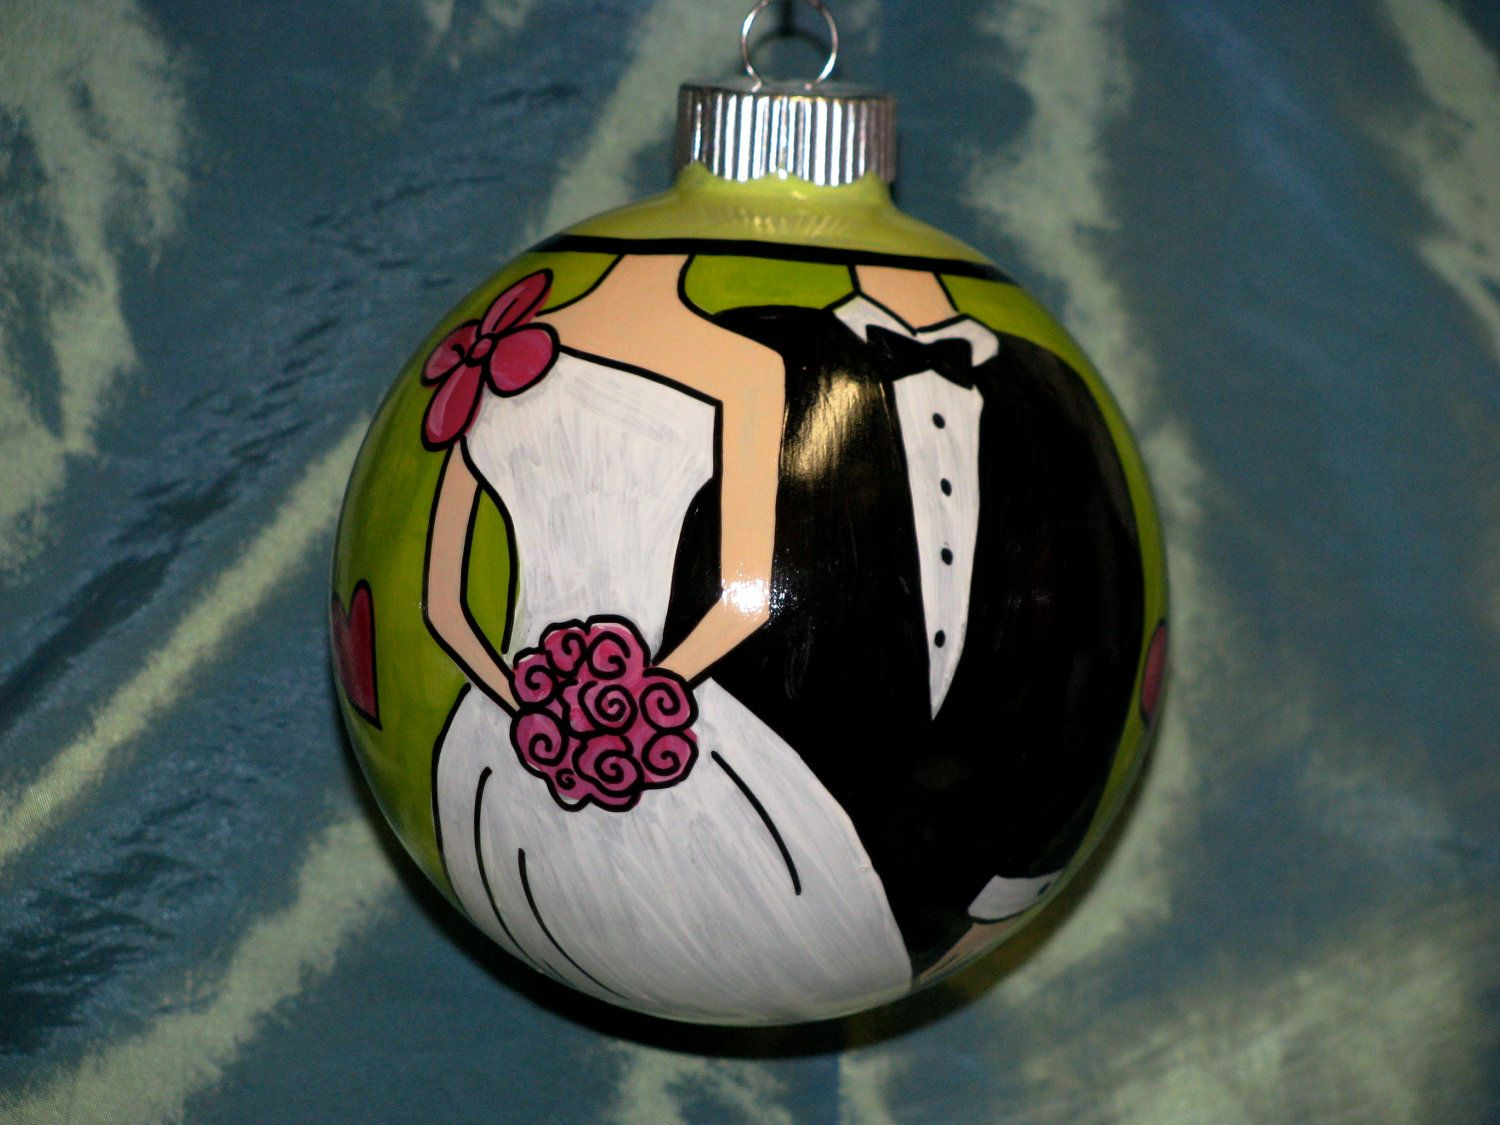 Hand Painted Ornament - Our First Christmas Bride and Groom. $35.00, via Etsy.